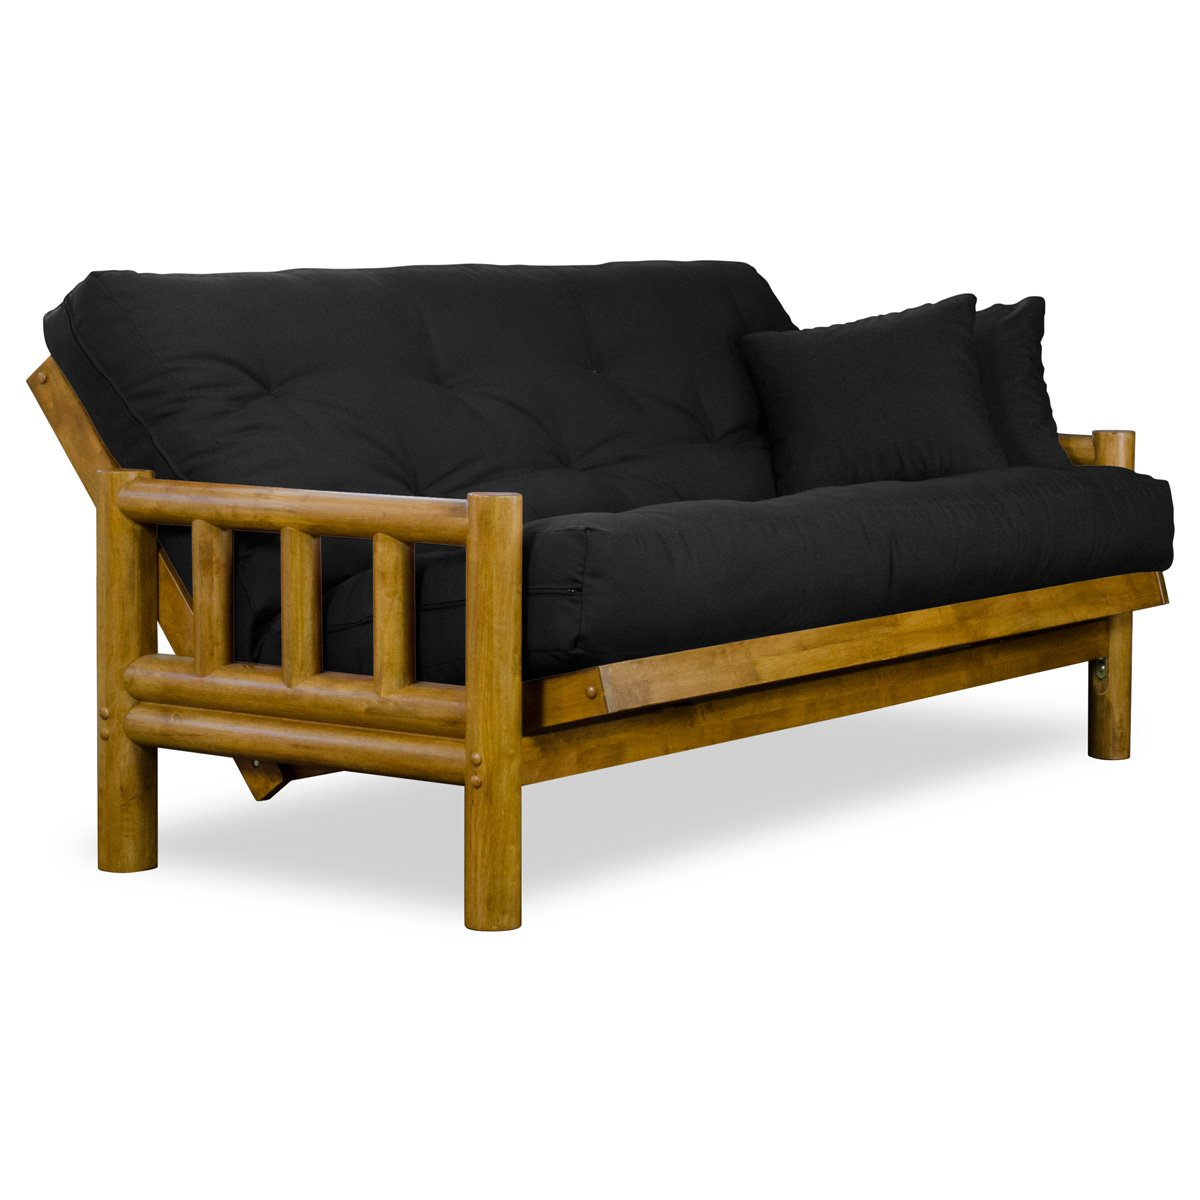 Amazon.com: Rustic Tahoe Log Full Size Wood Futon Frame - Heritage ...